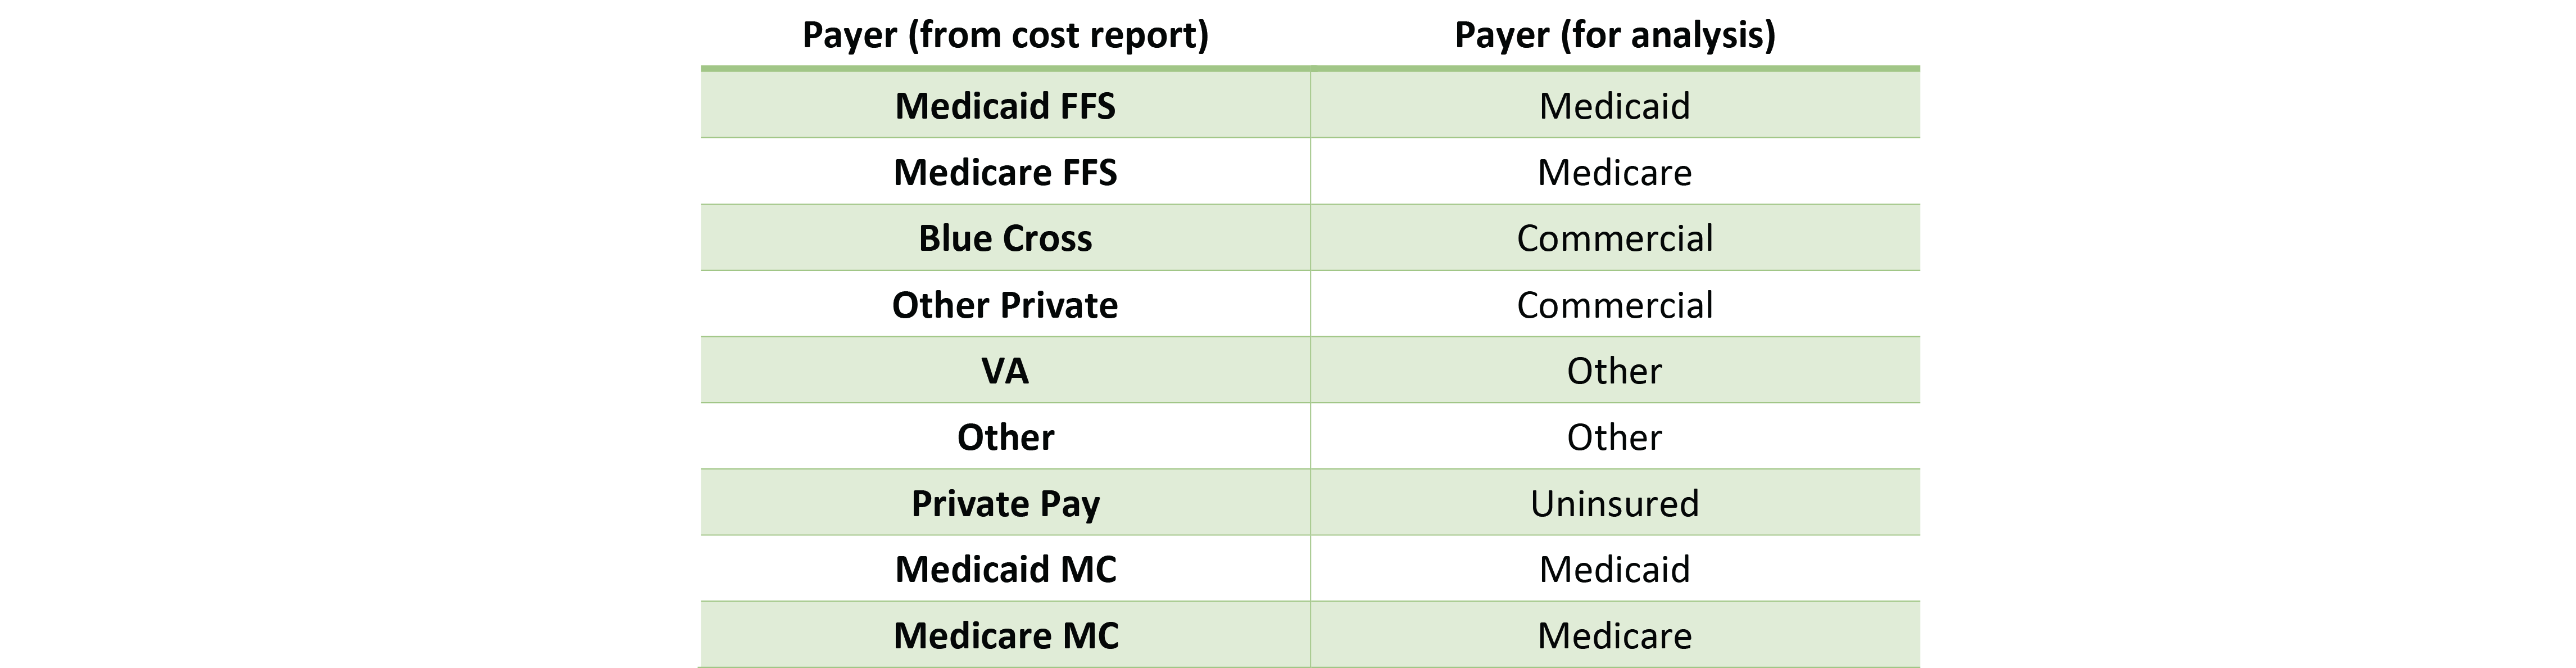 Mapping of Revenue and Utilization to Payers – Nursing Homes